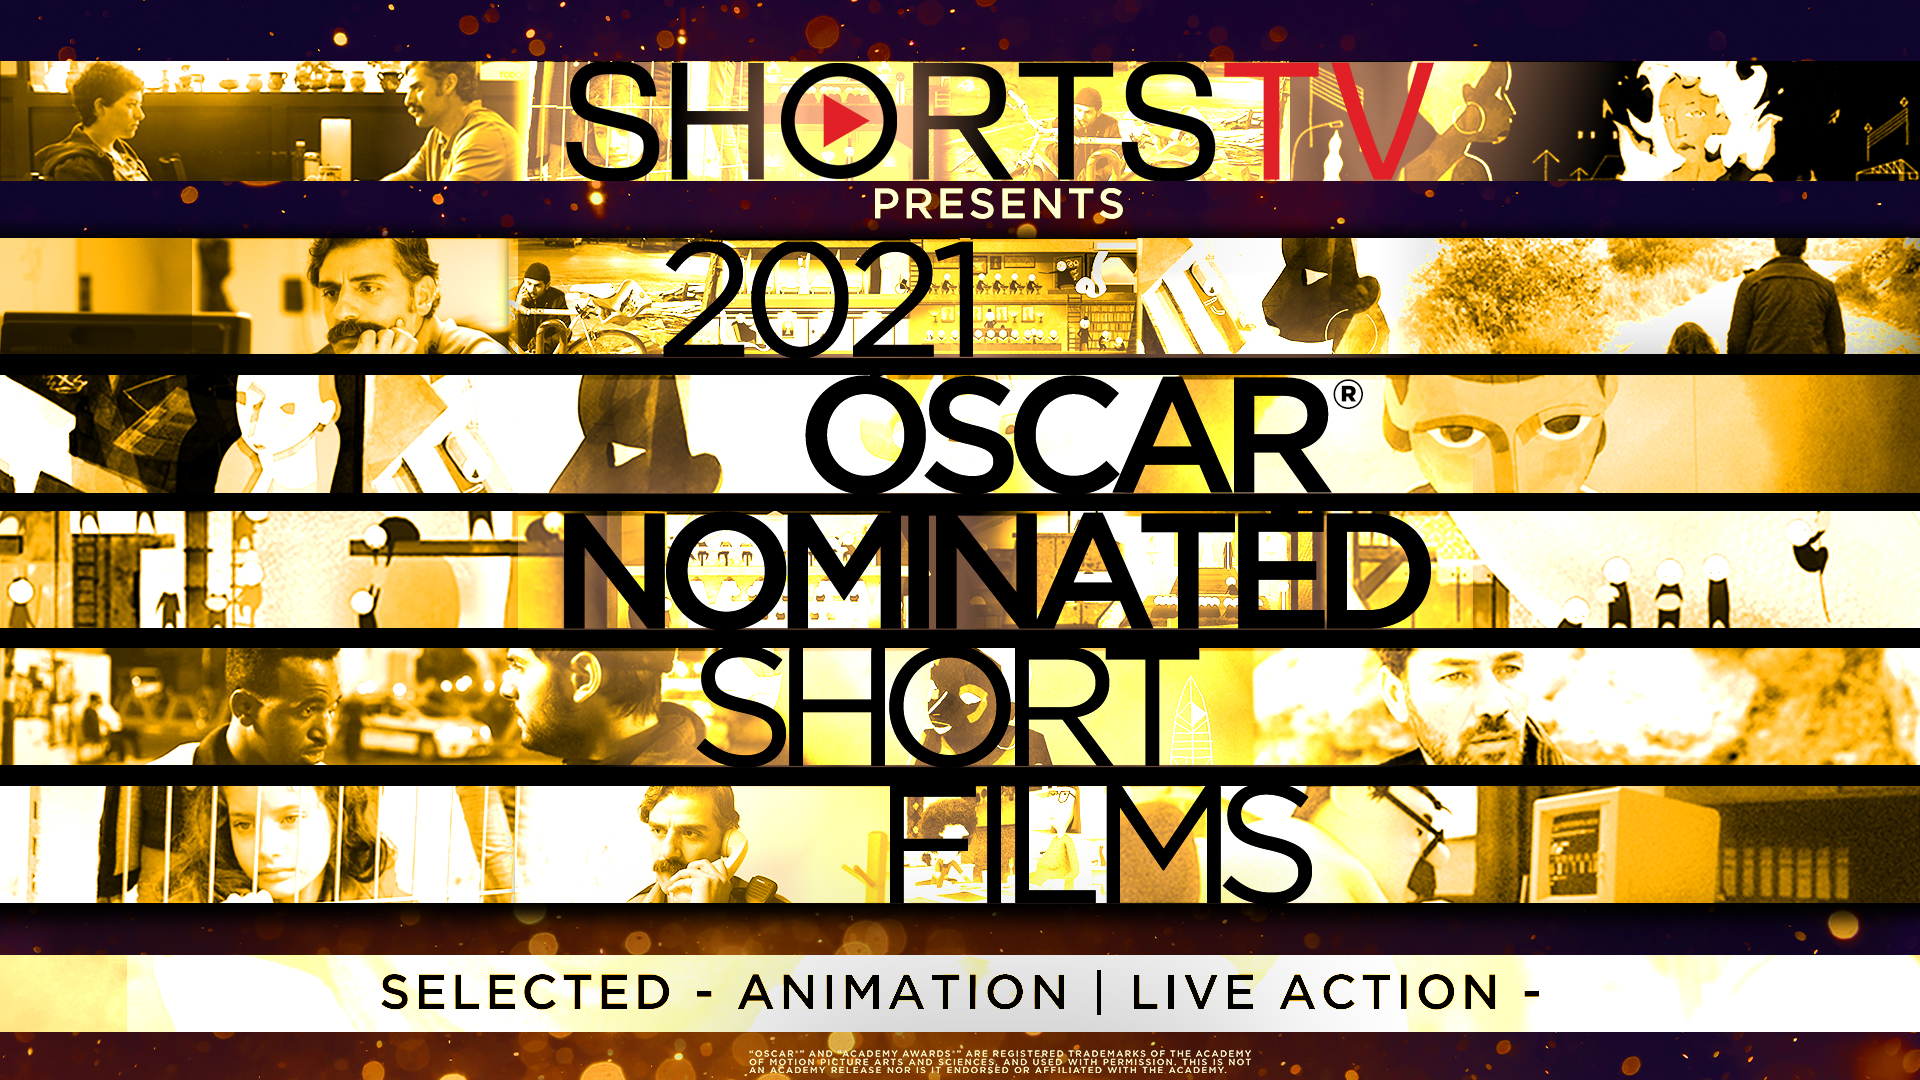 2021 Oscar Nominated Short Films: Selected Animations and Live Action